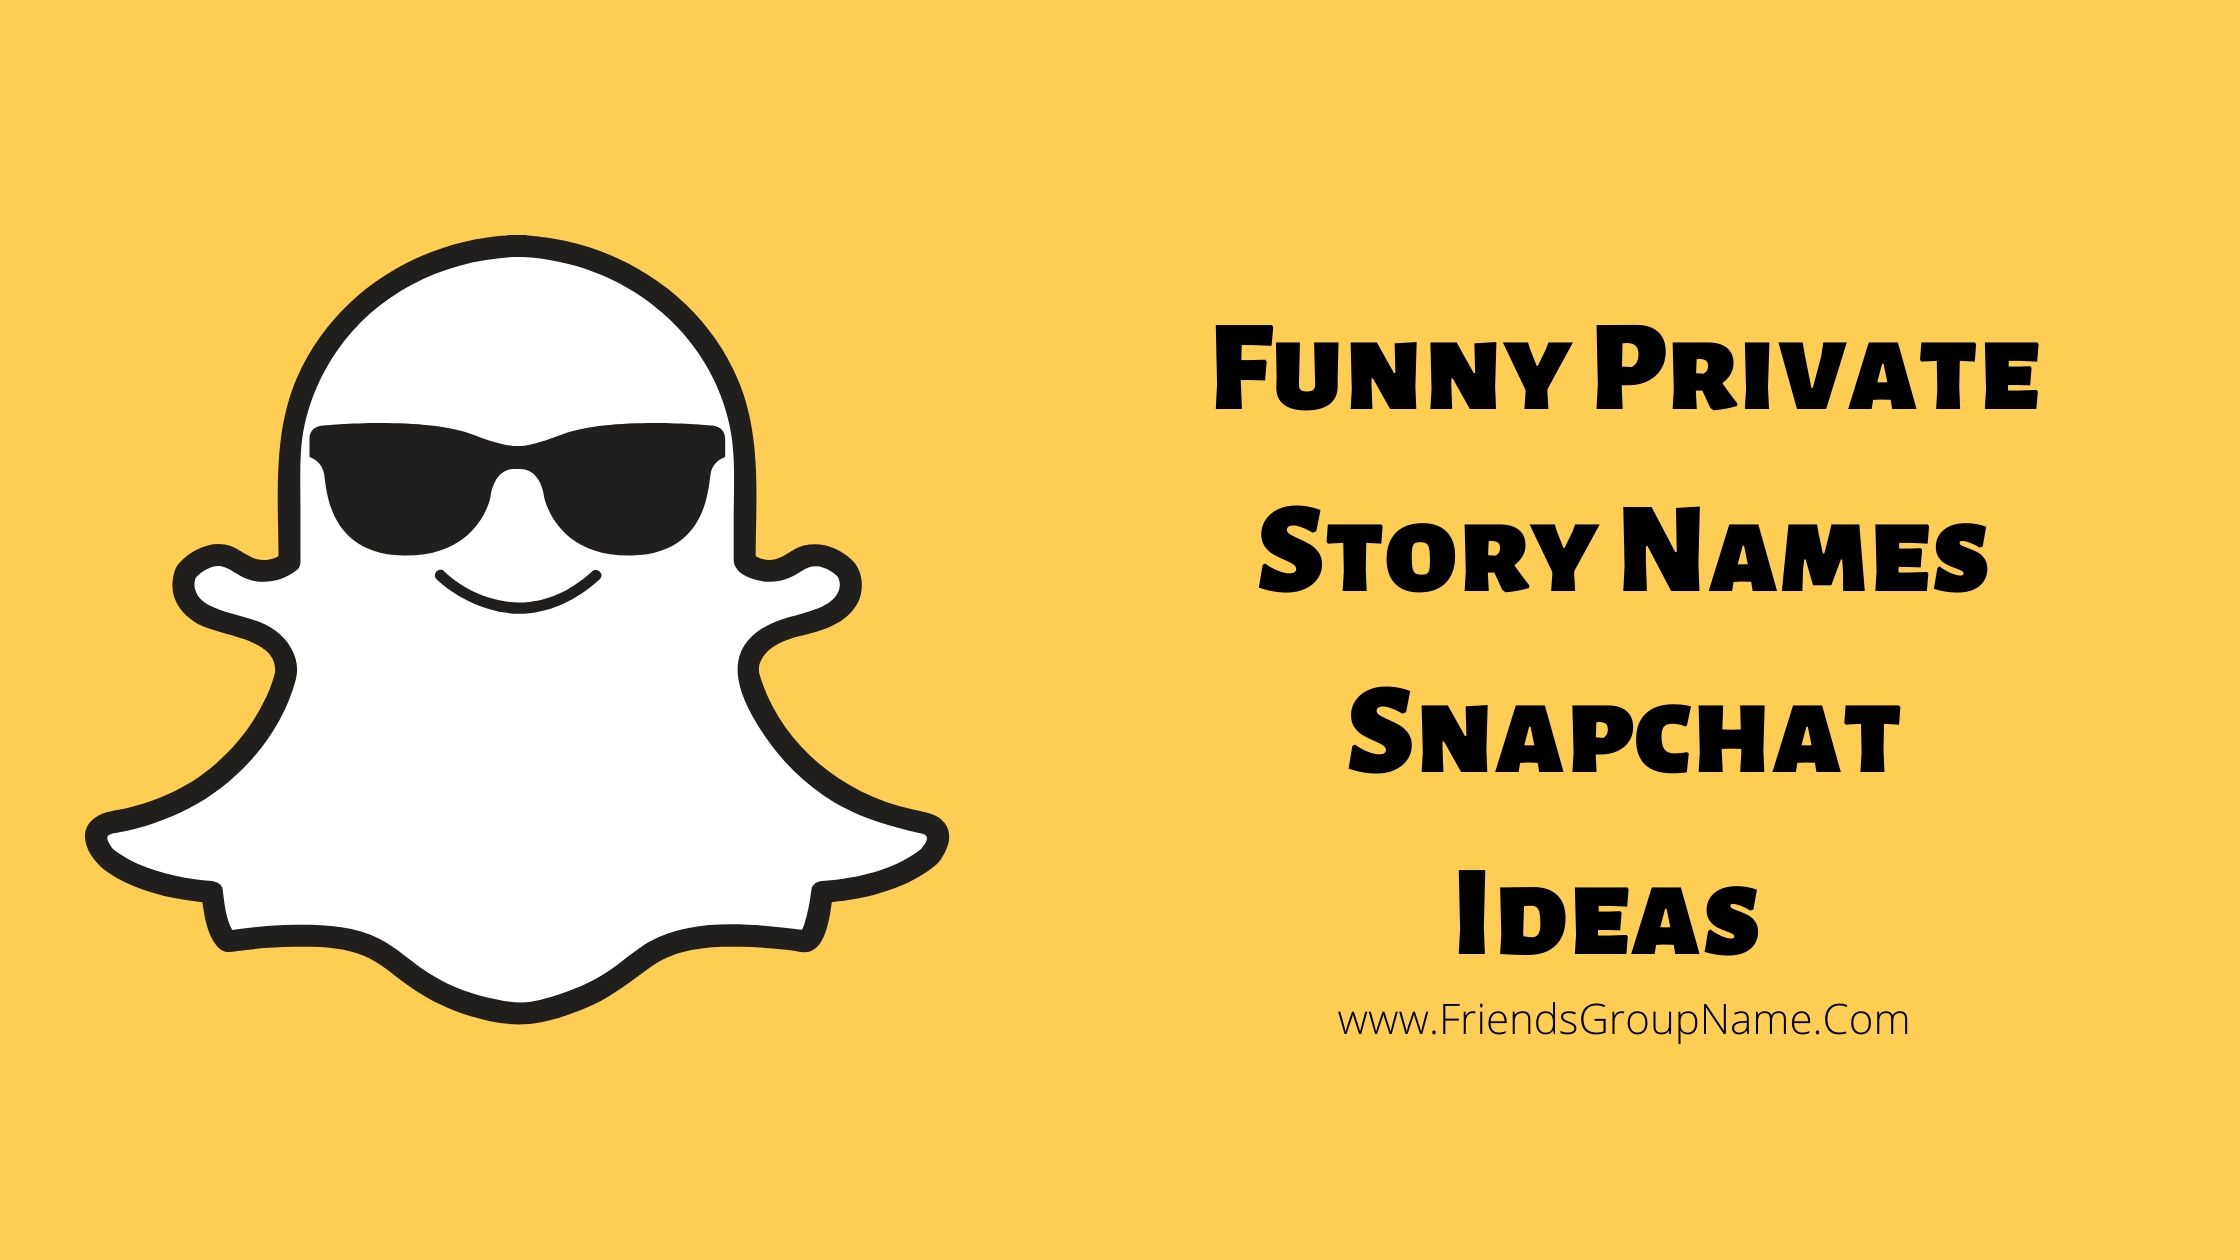 Funny Private Story Names Snapchat Ideas